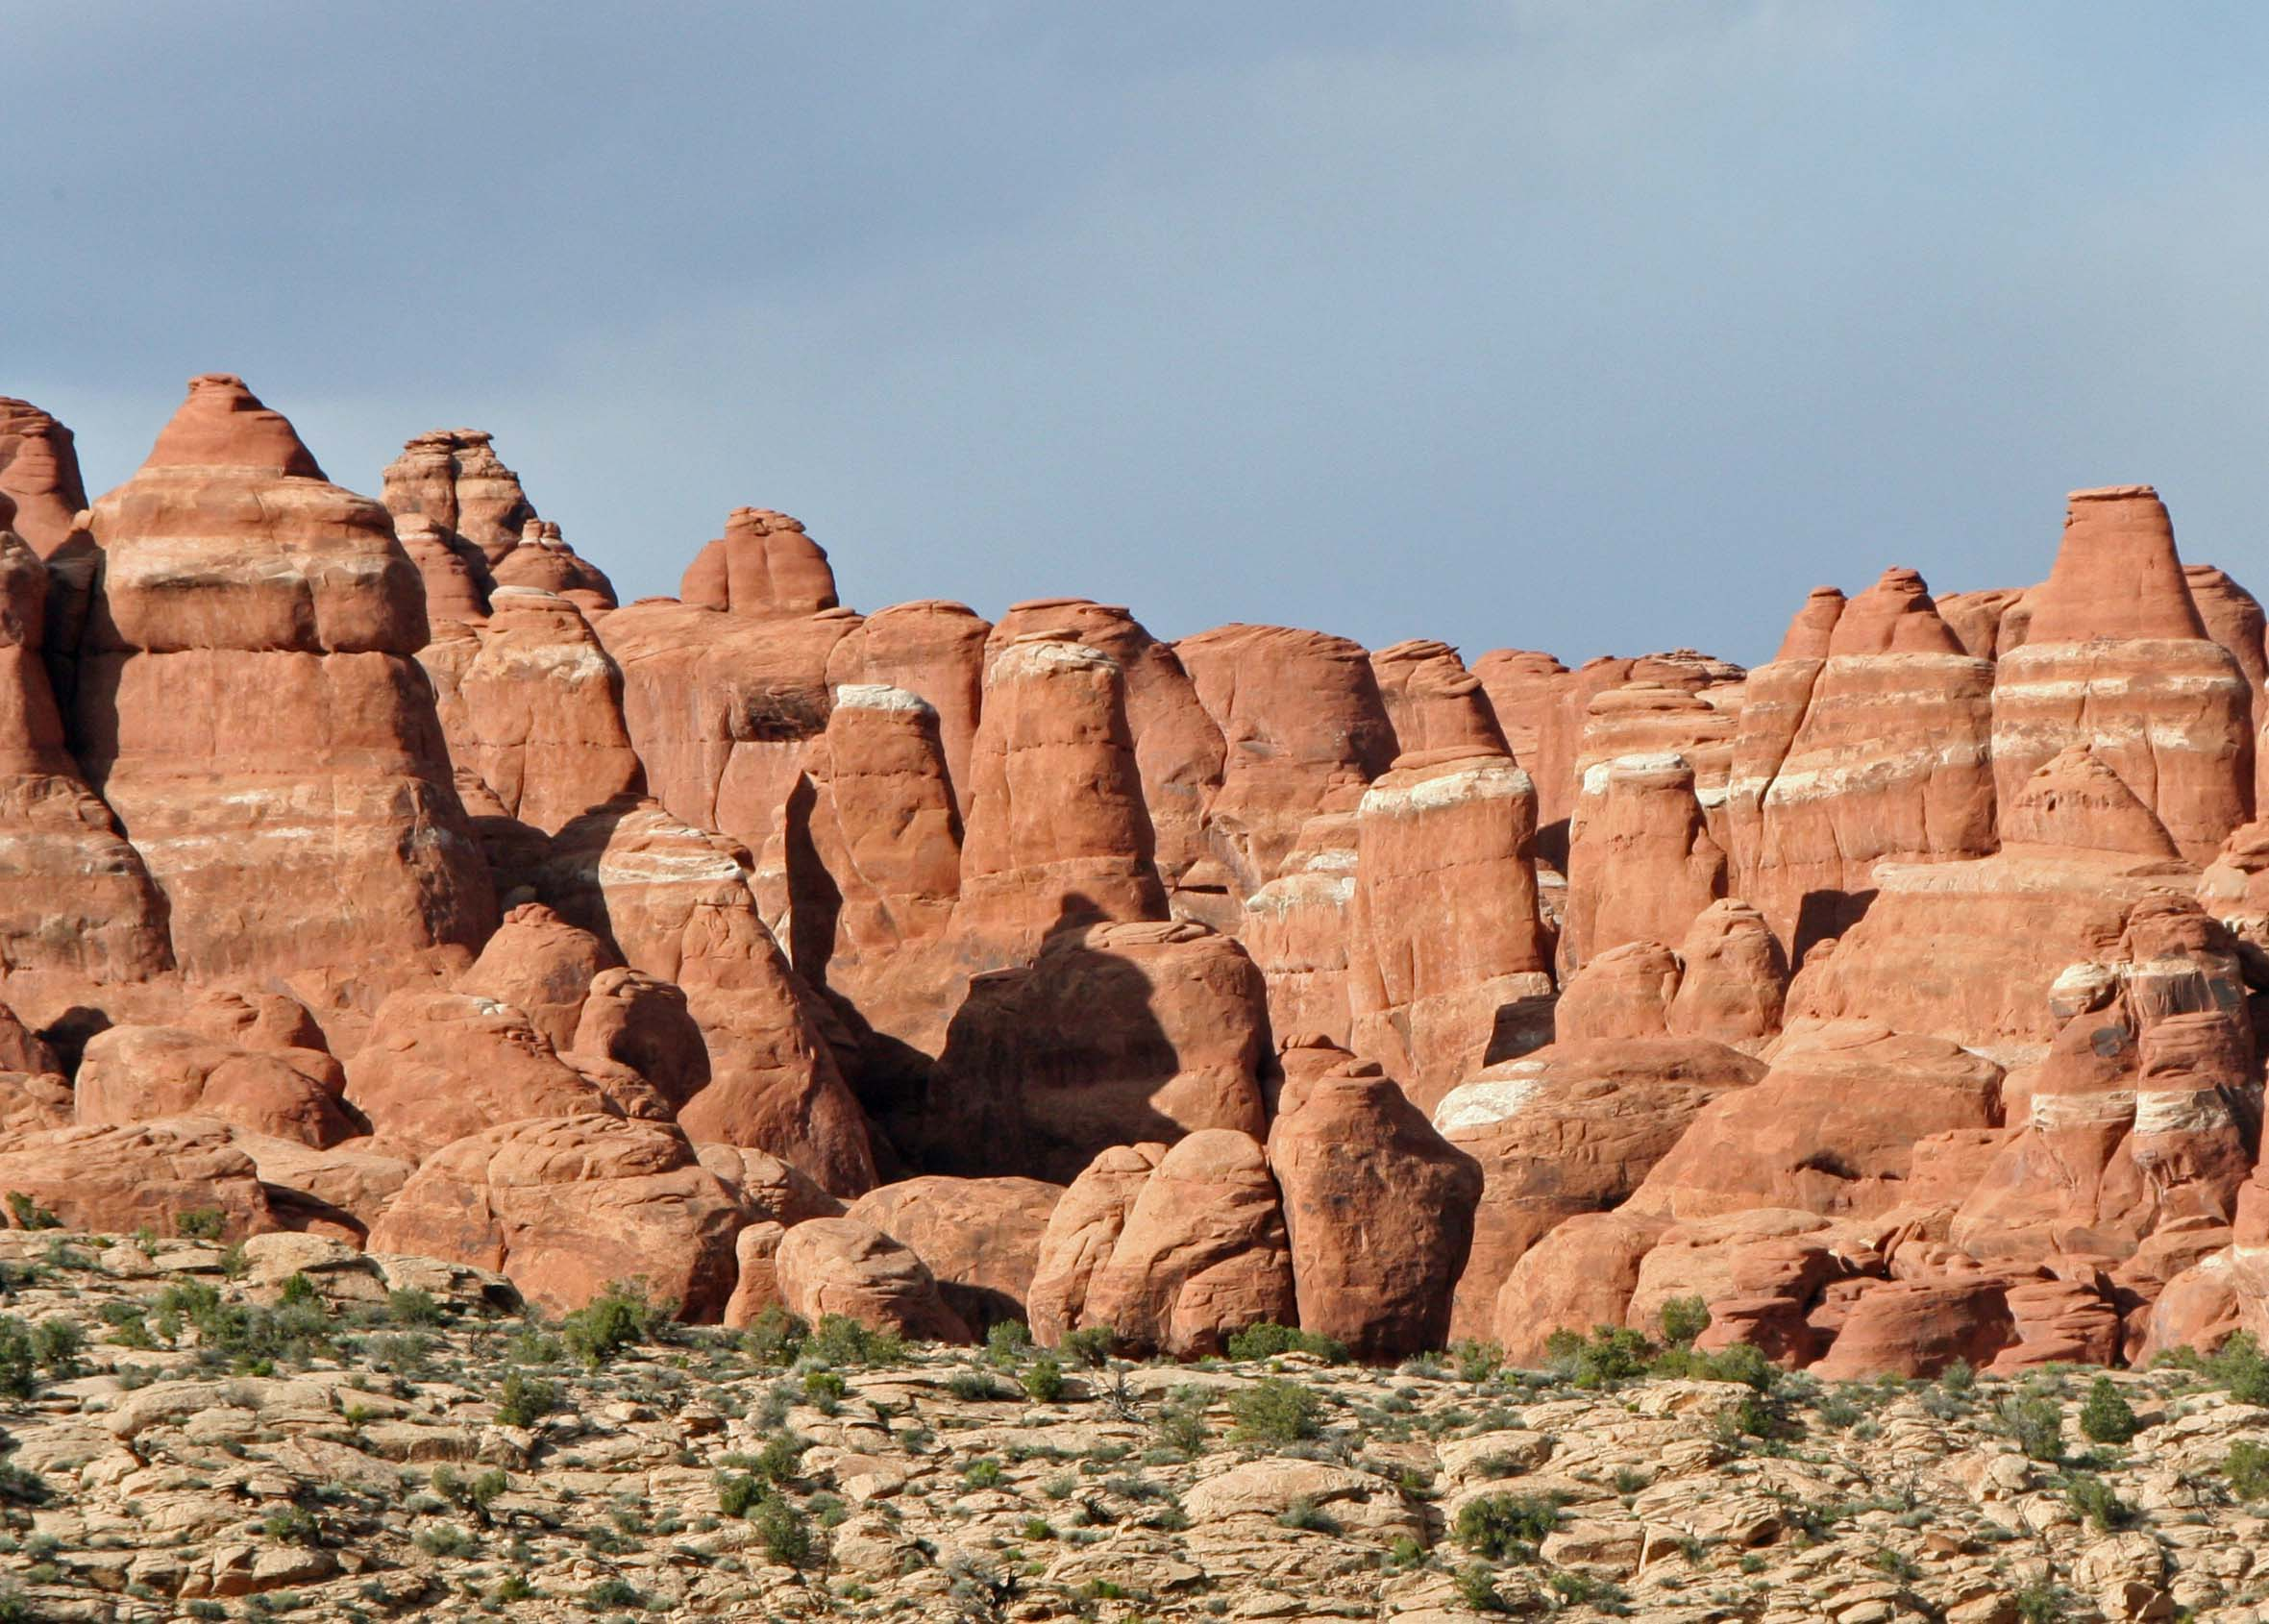 Sedimentary layers shown at Arches National Park. Photo by Curtis Mekemson.